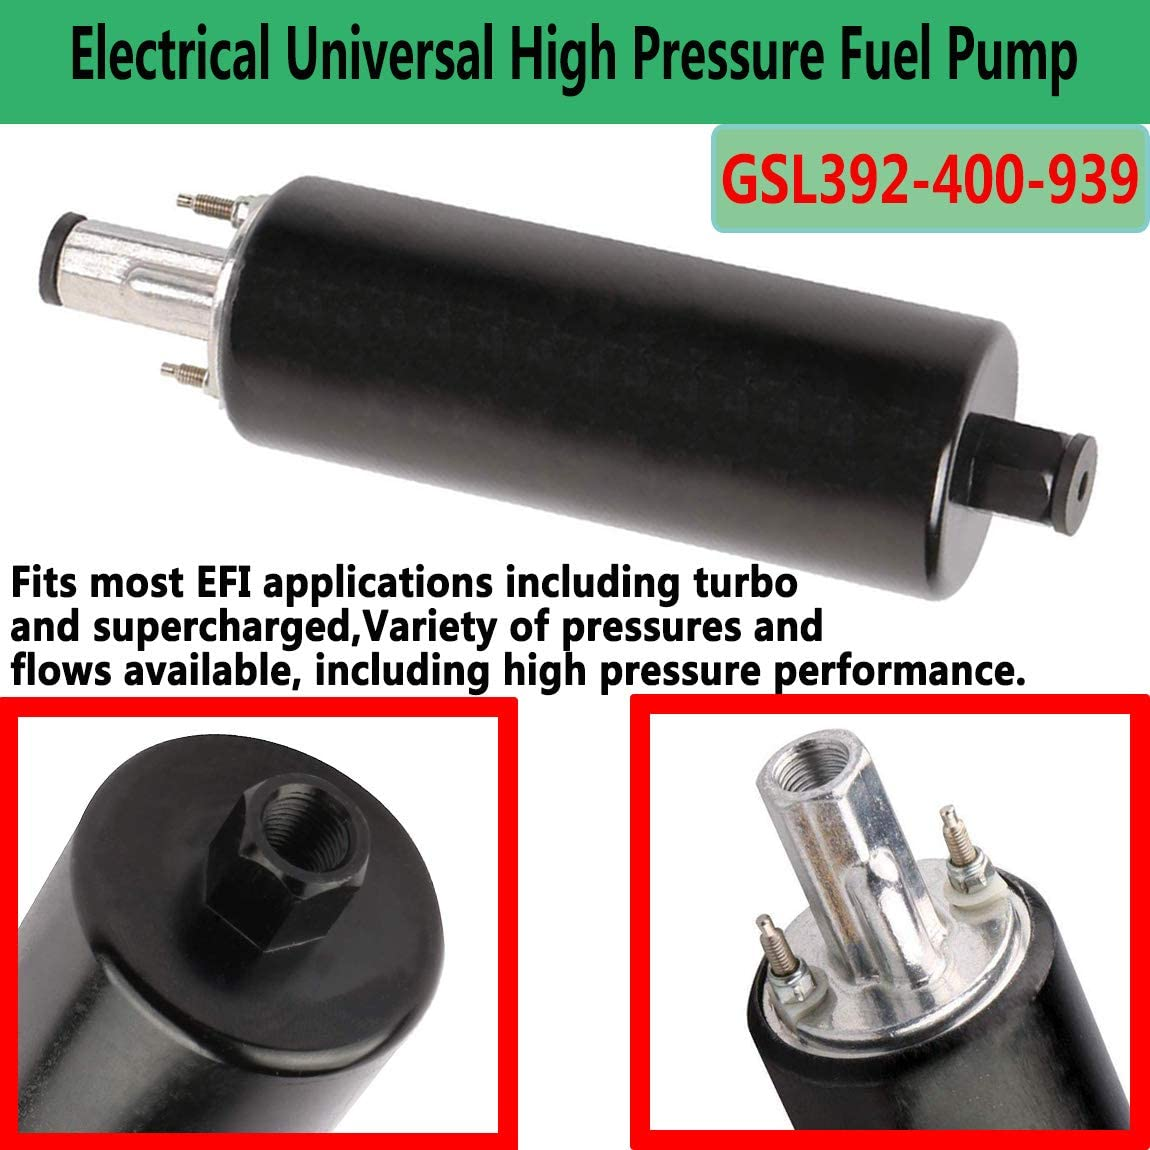 New GSL392-400-939 Electrical Universal High Pressure Fuel Pump with Installation Kit,Replacement for Walbro GSL392 255LPH Inline External Fuel Pump